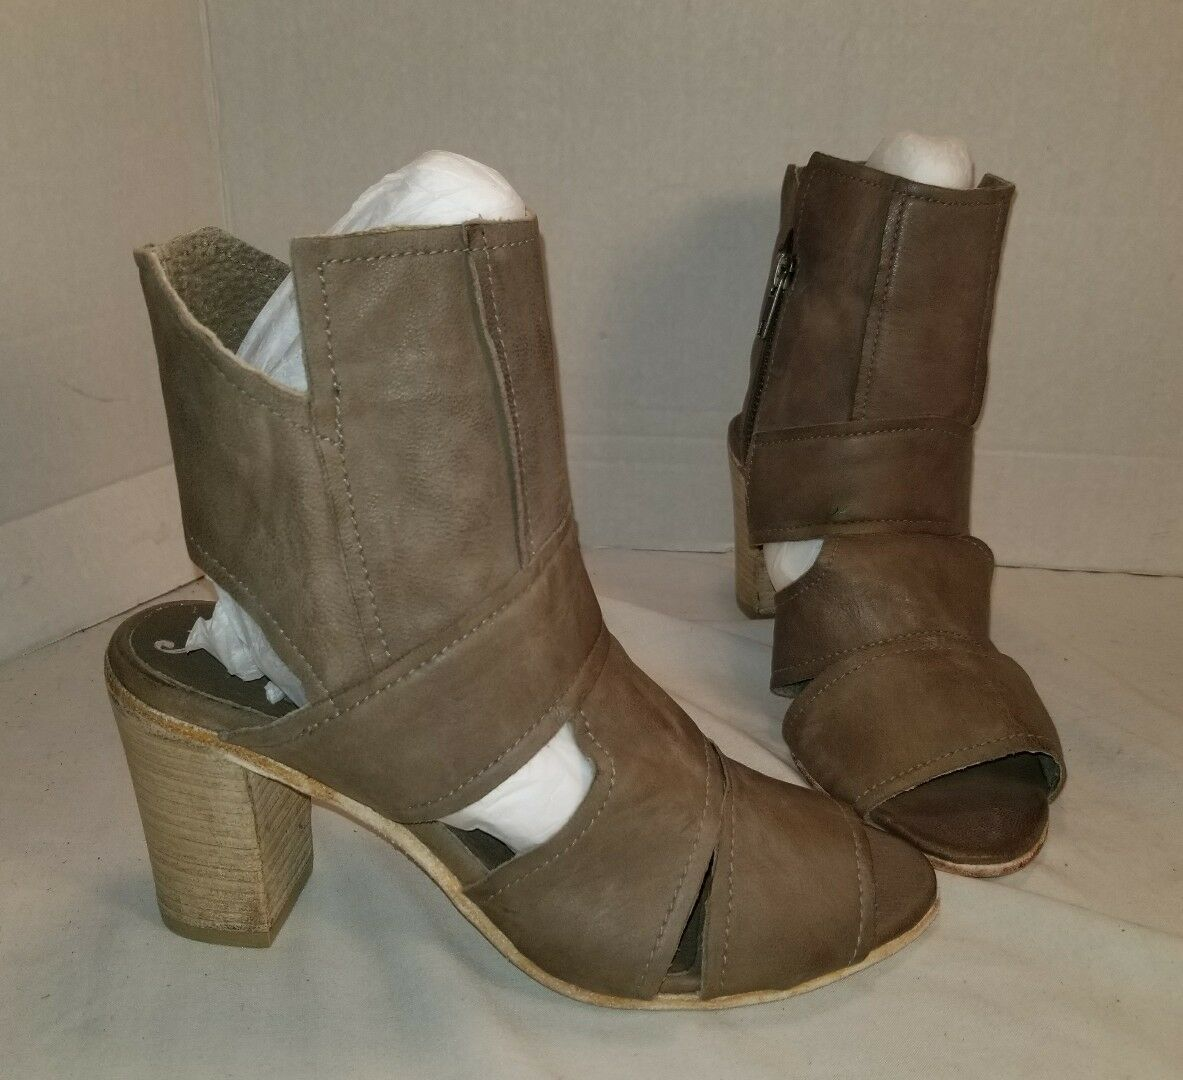 NEW NEW NEW FREE PEOPLE EFFIE BLOCK HEEL TAUPE LEATHER ANKLE bottes femmes EUR 38 US 8 14083d